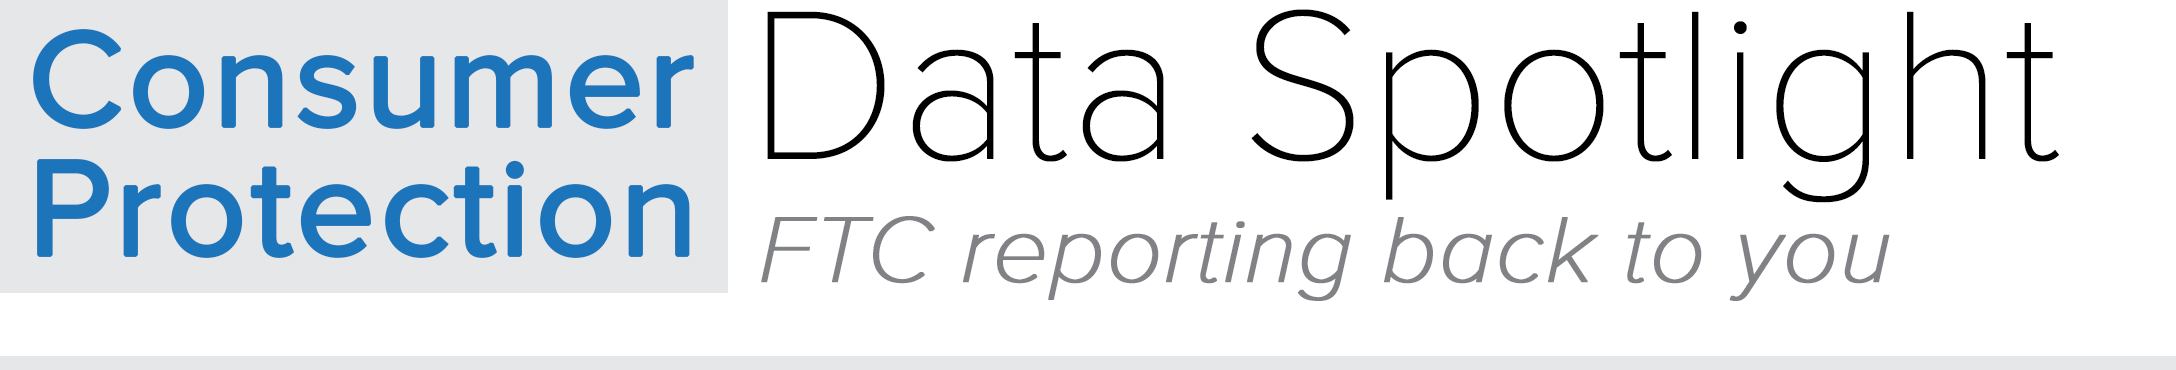 Data Spotlight Blog: FTC reporting back to you